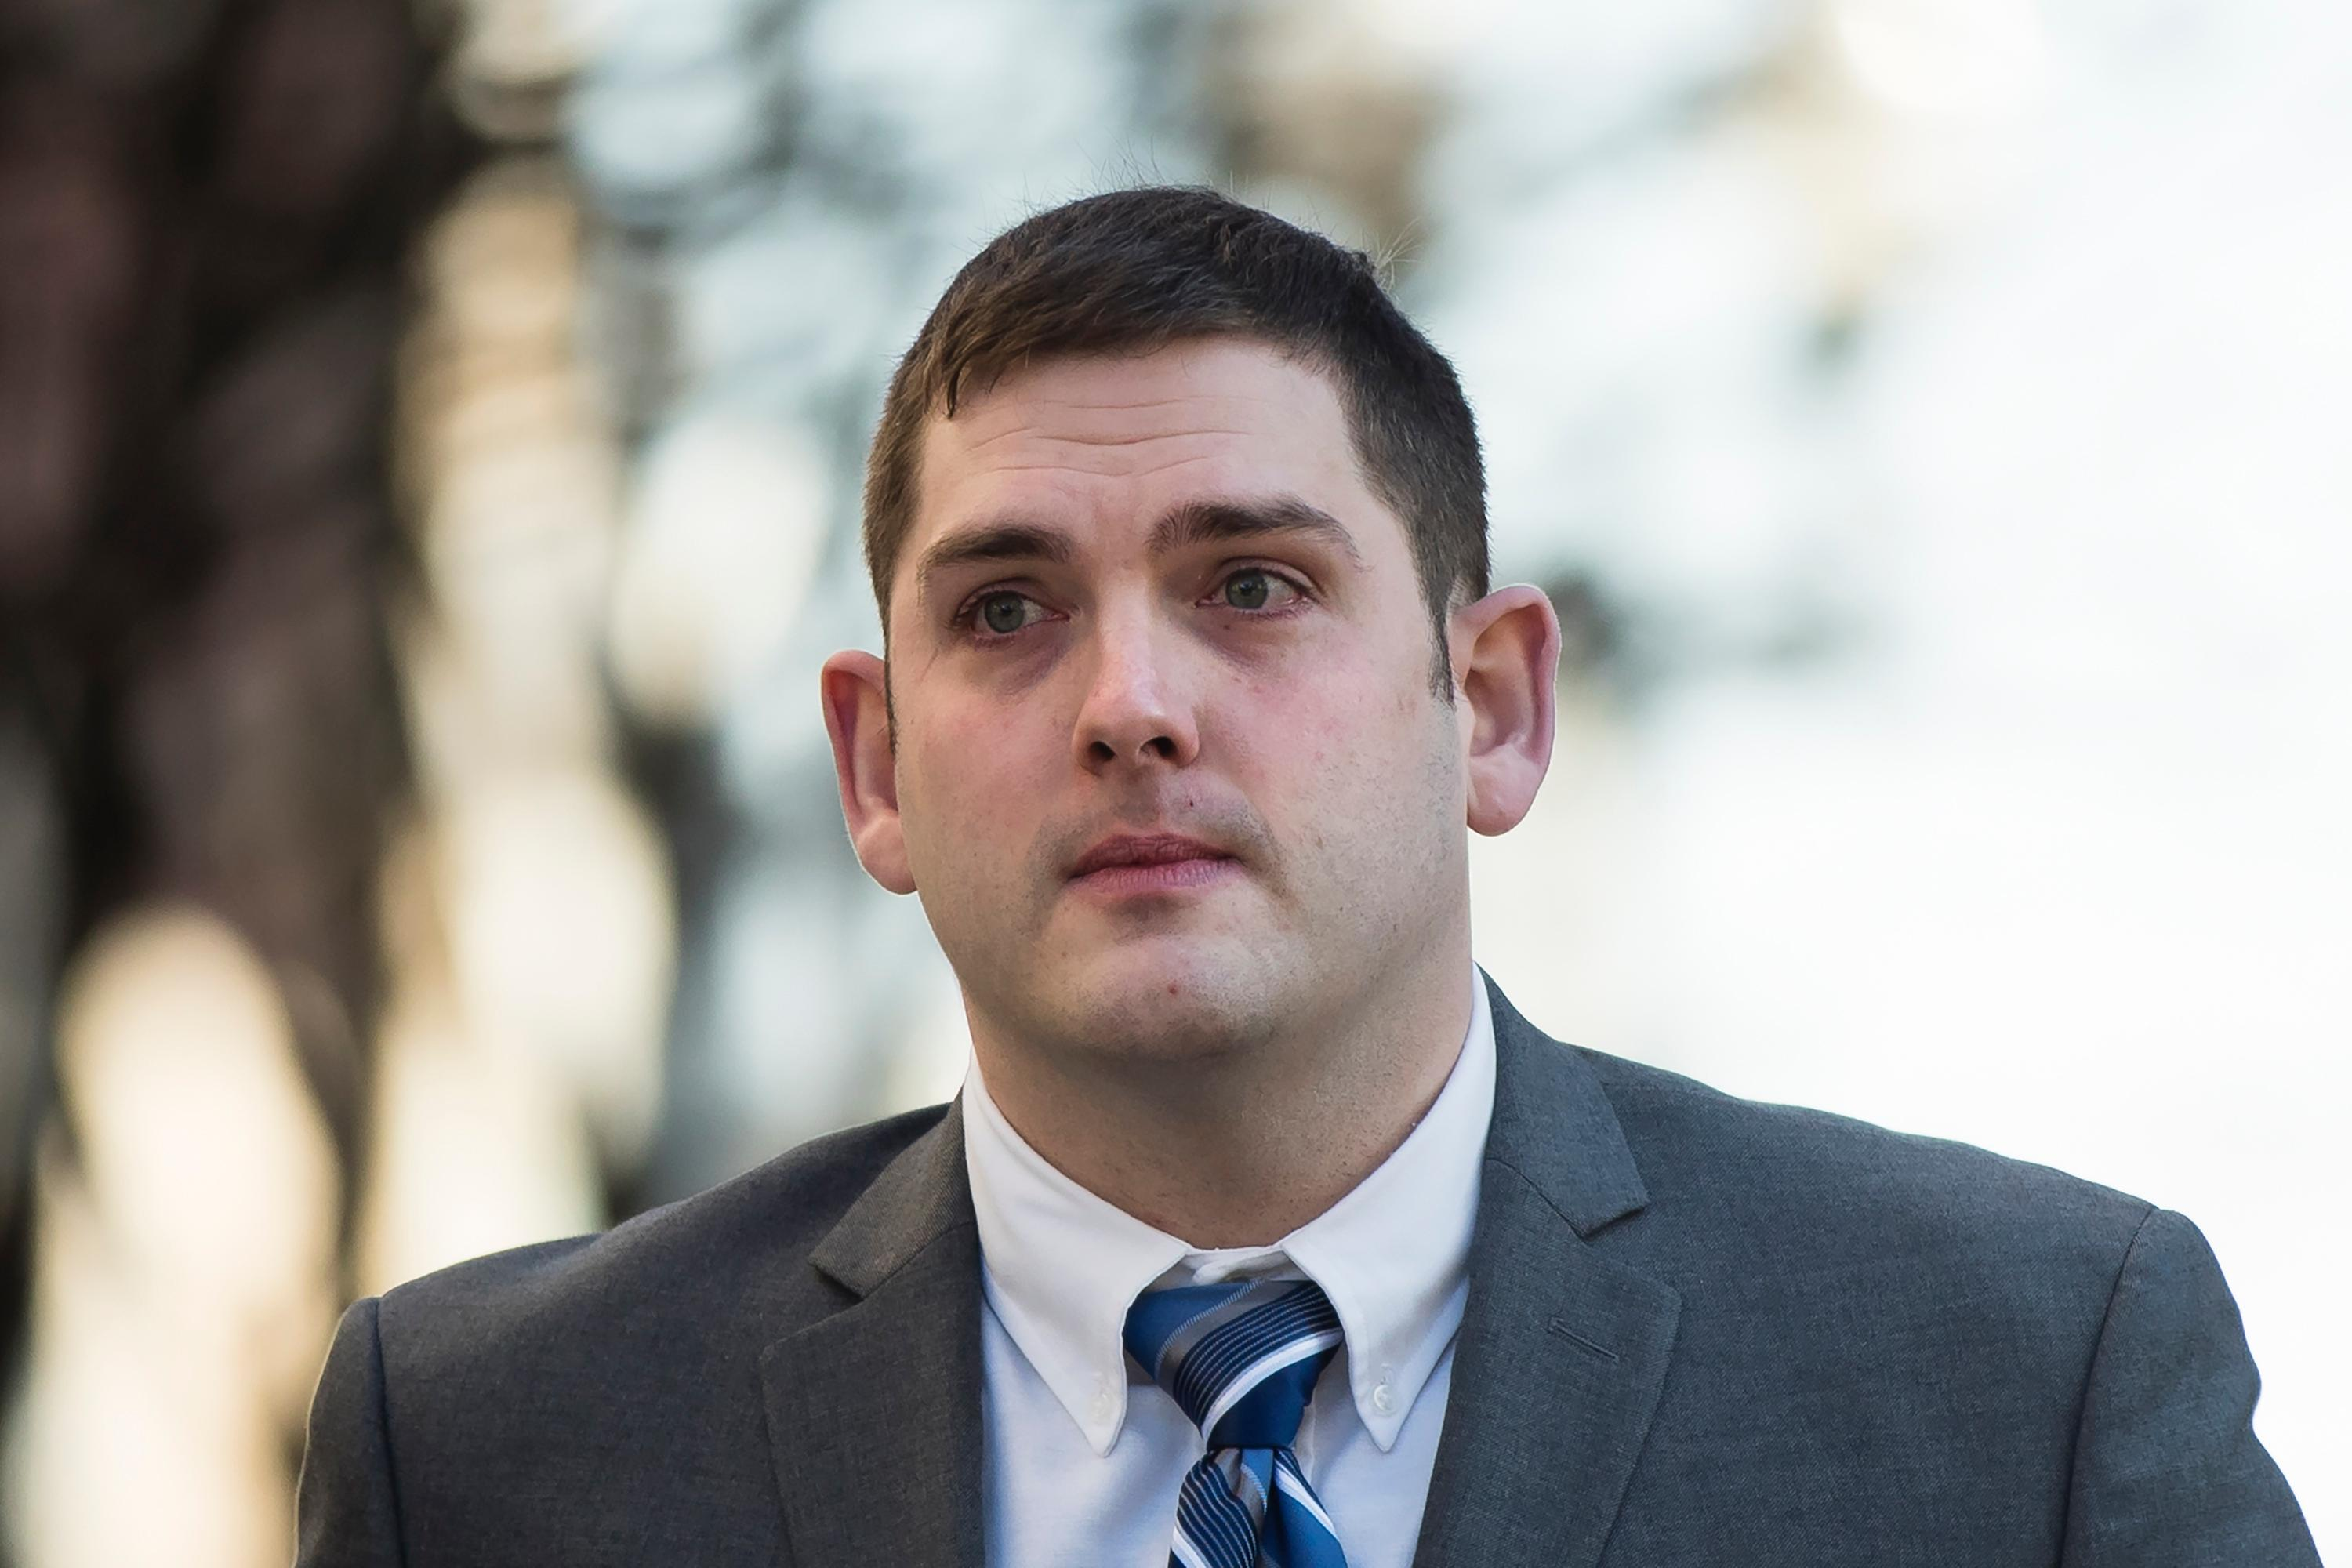 In this March 12, 2019 file photo, former East Pittsburgh police officer Michael Rosfeld, charged with homicide in the shooting death of Antwon Rose II, walks to the Dauphin County Courthouse in Harrisburg, Pa. (AP Photo/Matt Rourke)